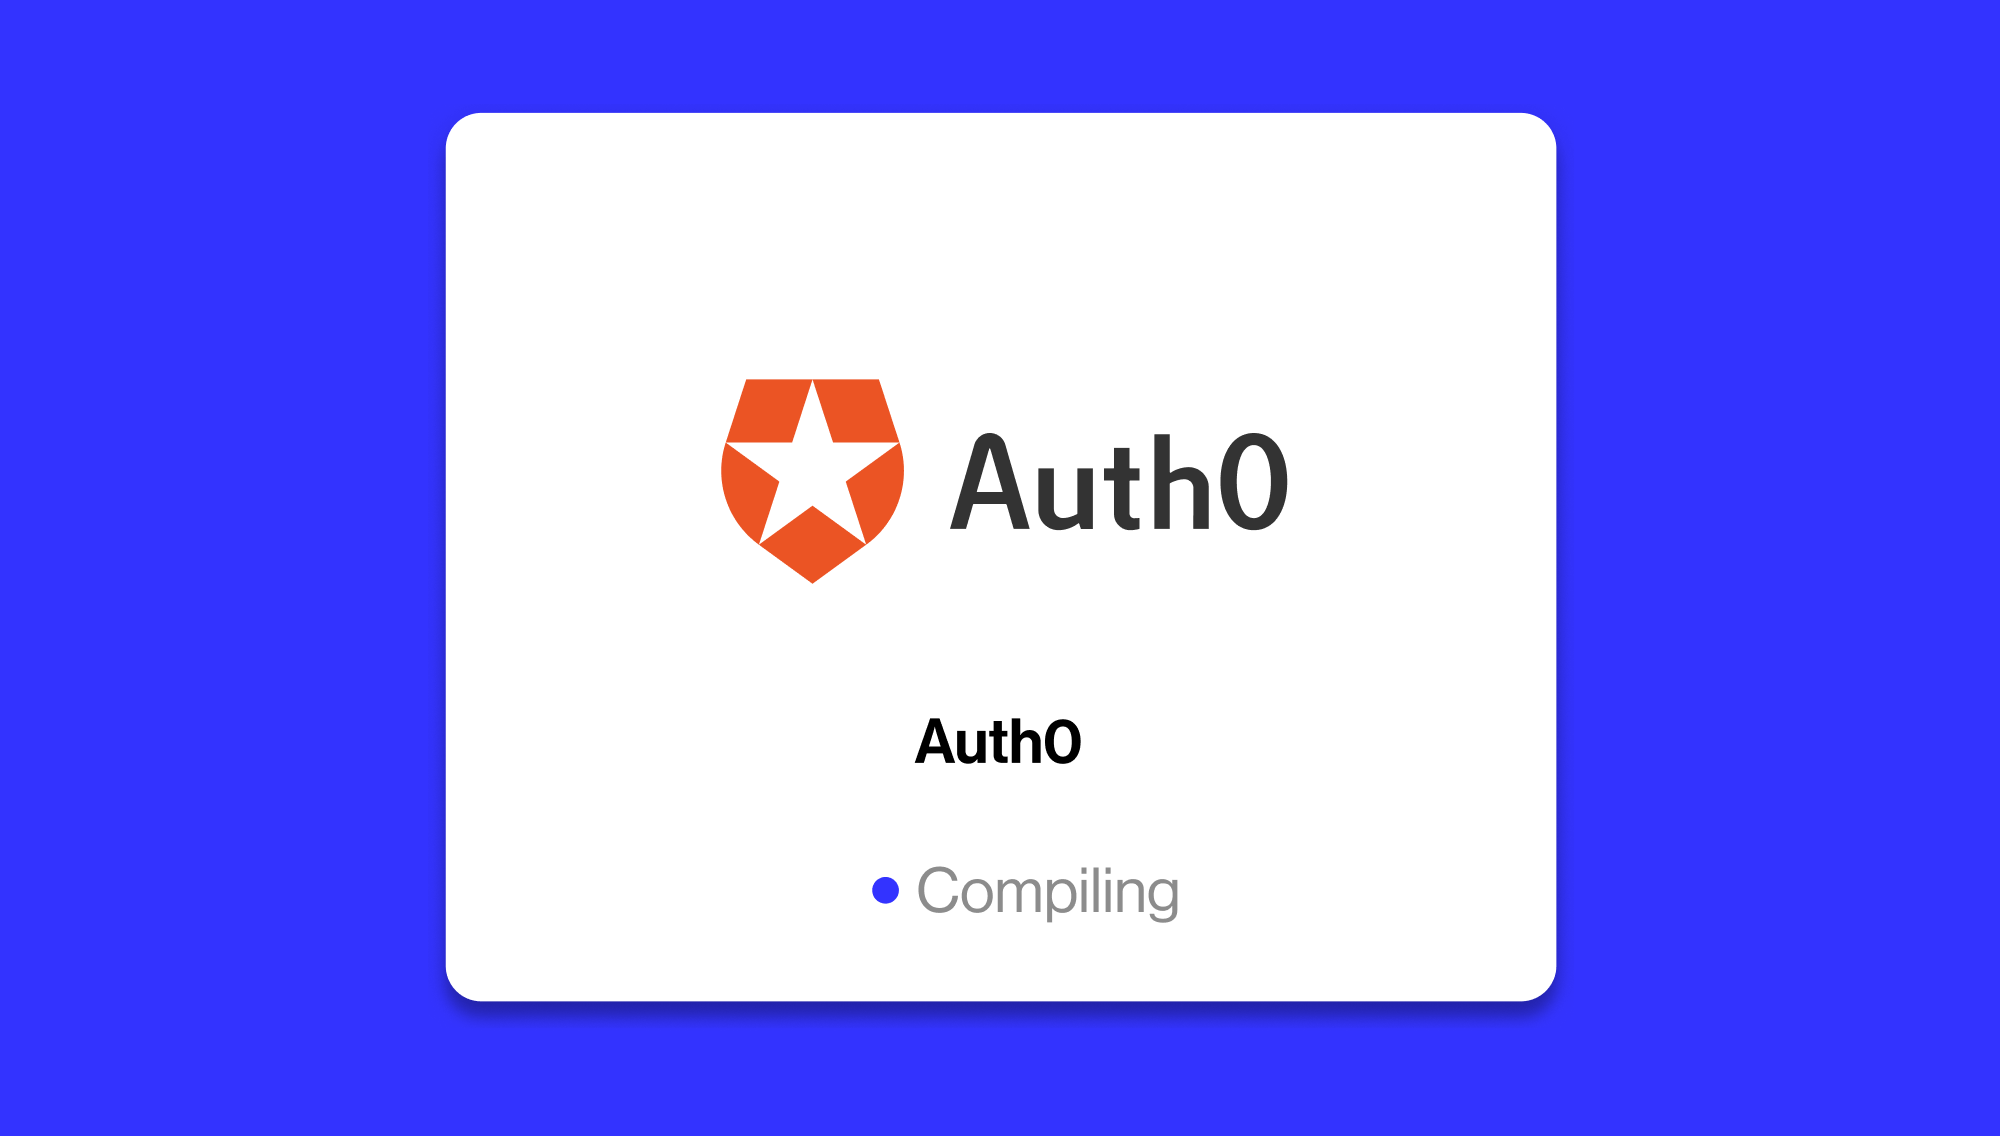 Automatically fulfill privacy requests in Auth0